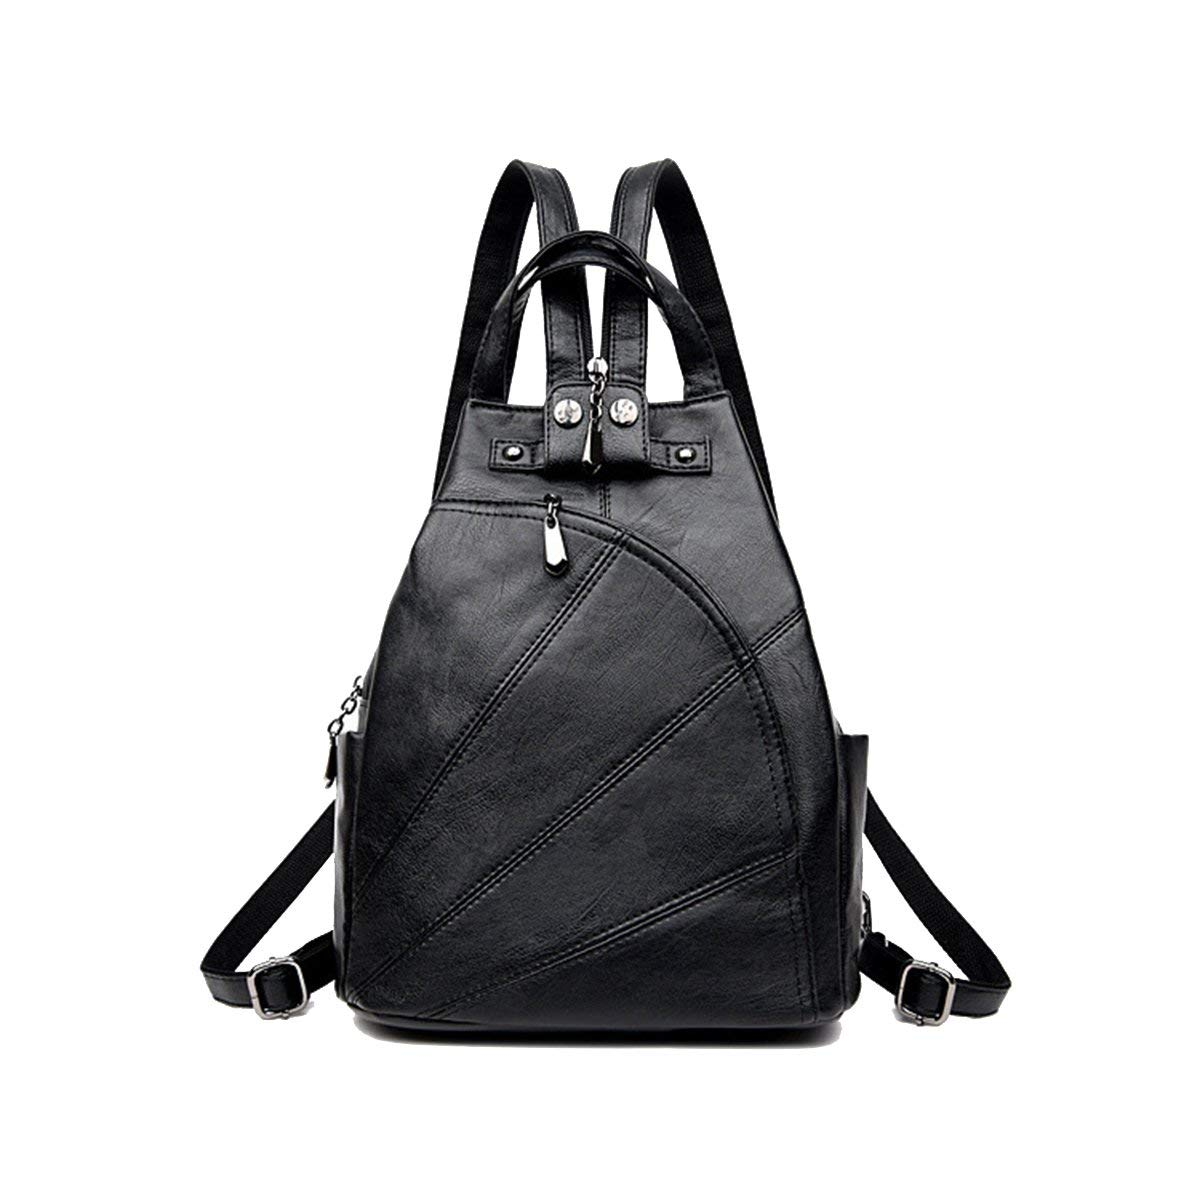 OULII PU Leather Backpack Waterproof Travel Backpack with Side Pockets for Teenage Girls Women (Black)